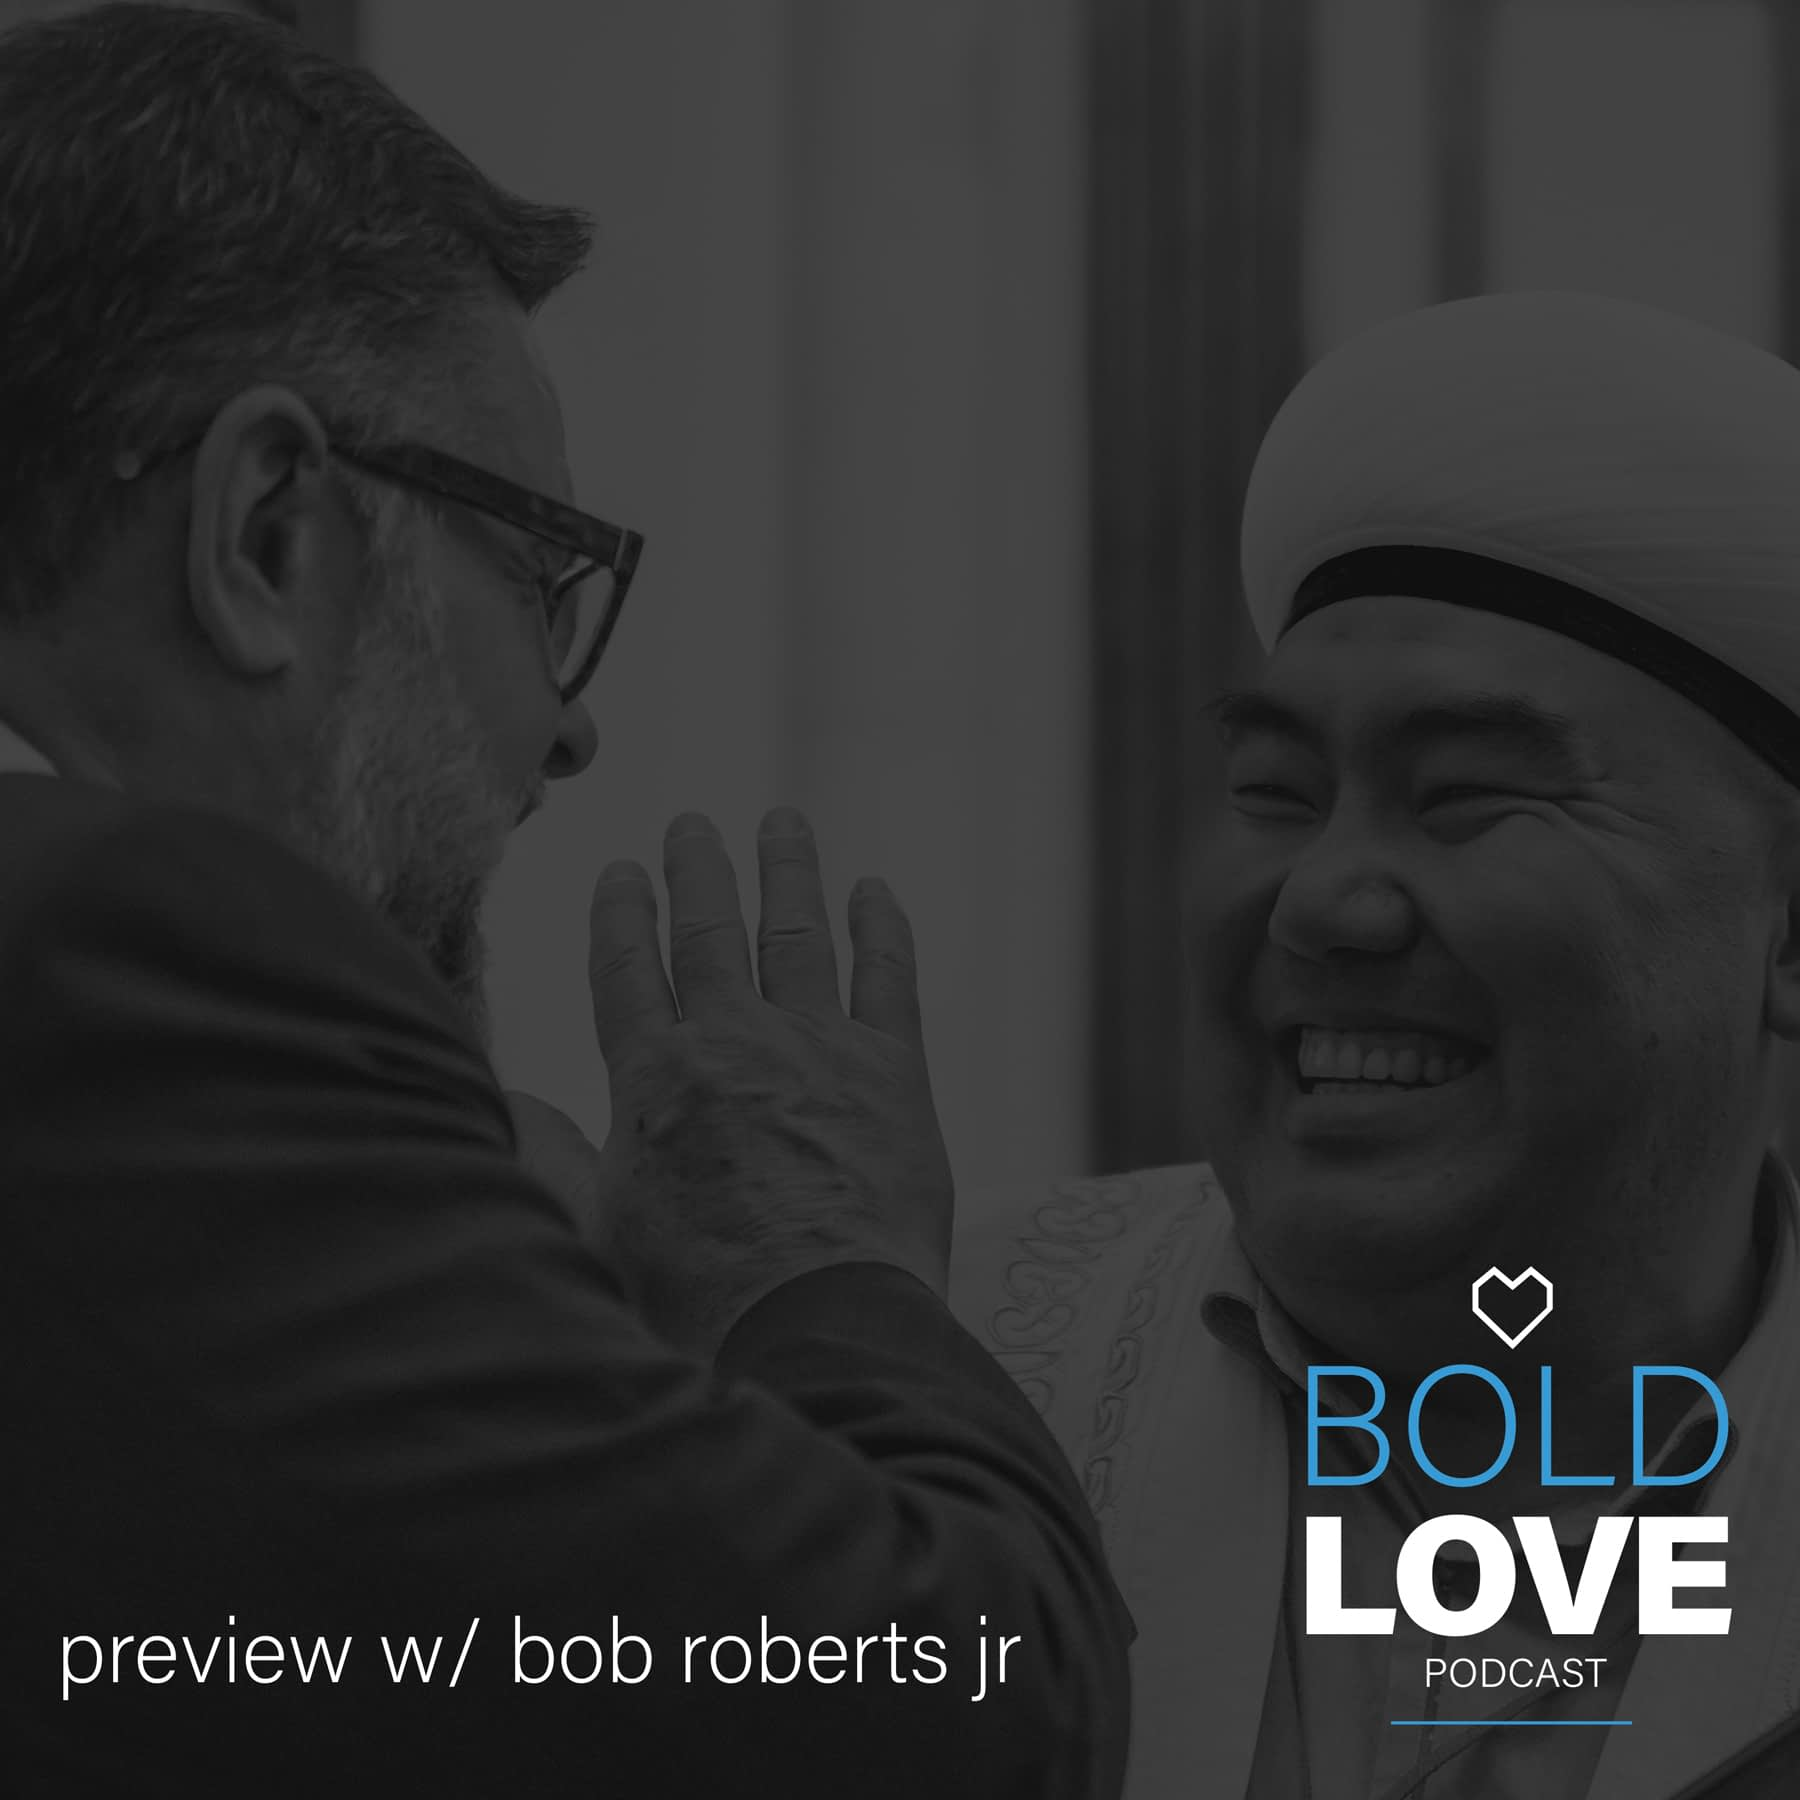 Trailer – Uncommon Journey to Bold Love